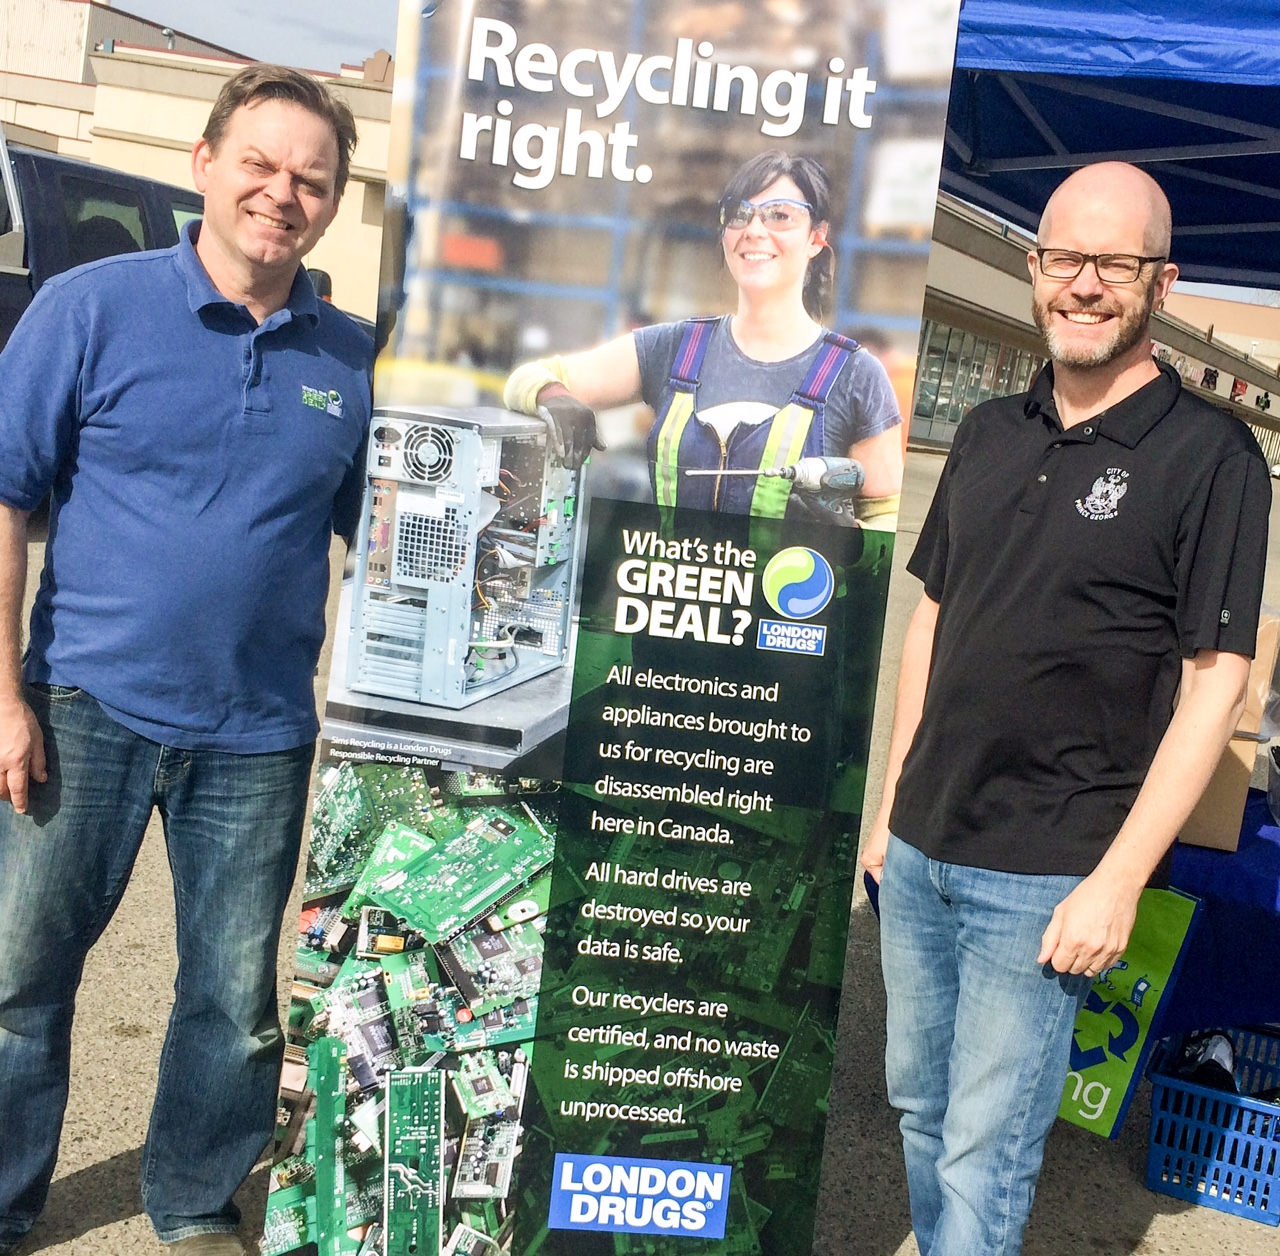 London Drugs Recycling Roundup